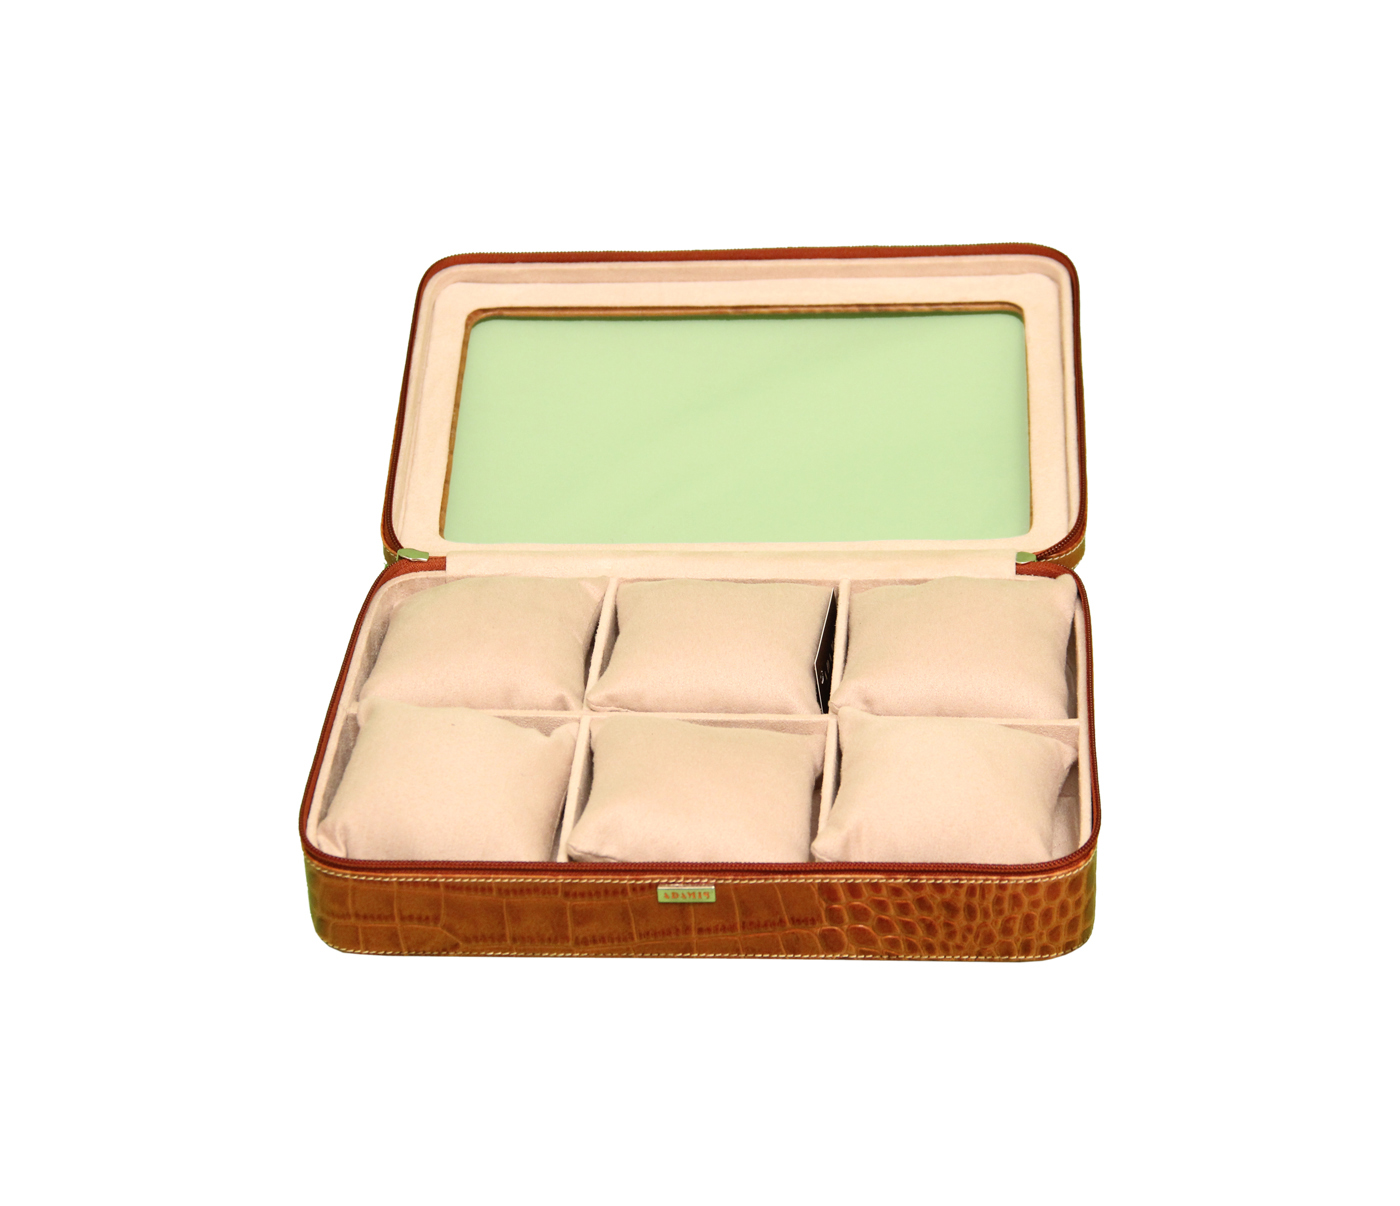 W212--Watch case to hold 6 watches in Genuine Leather - Tan